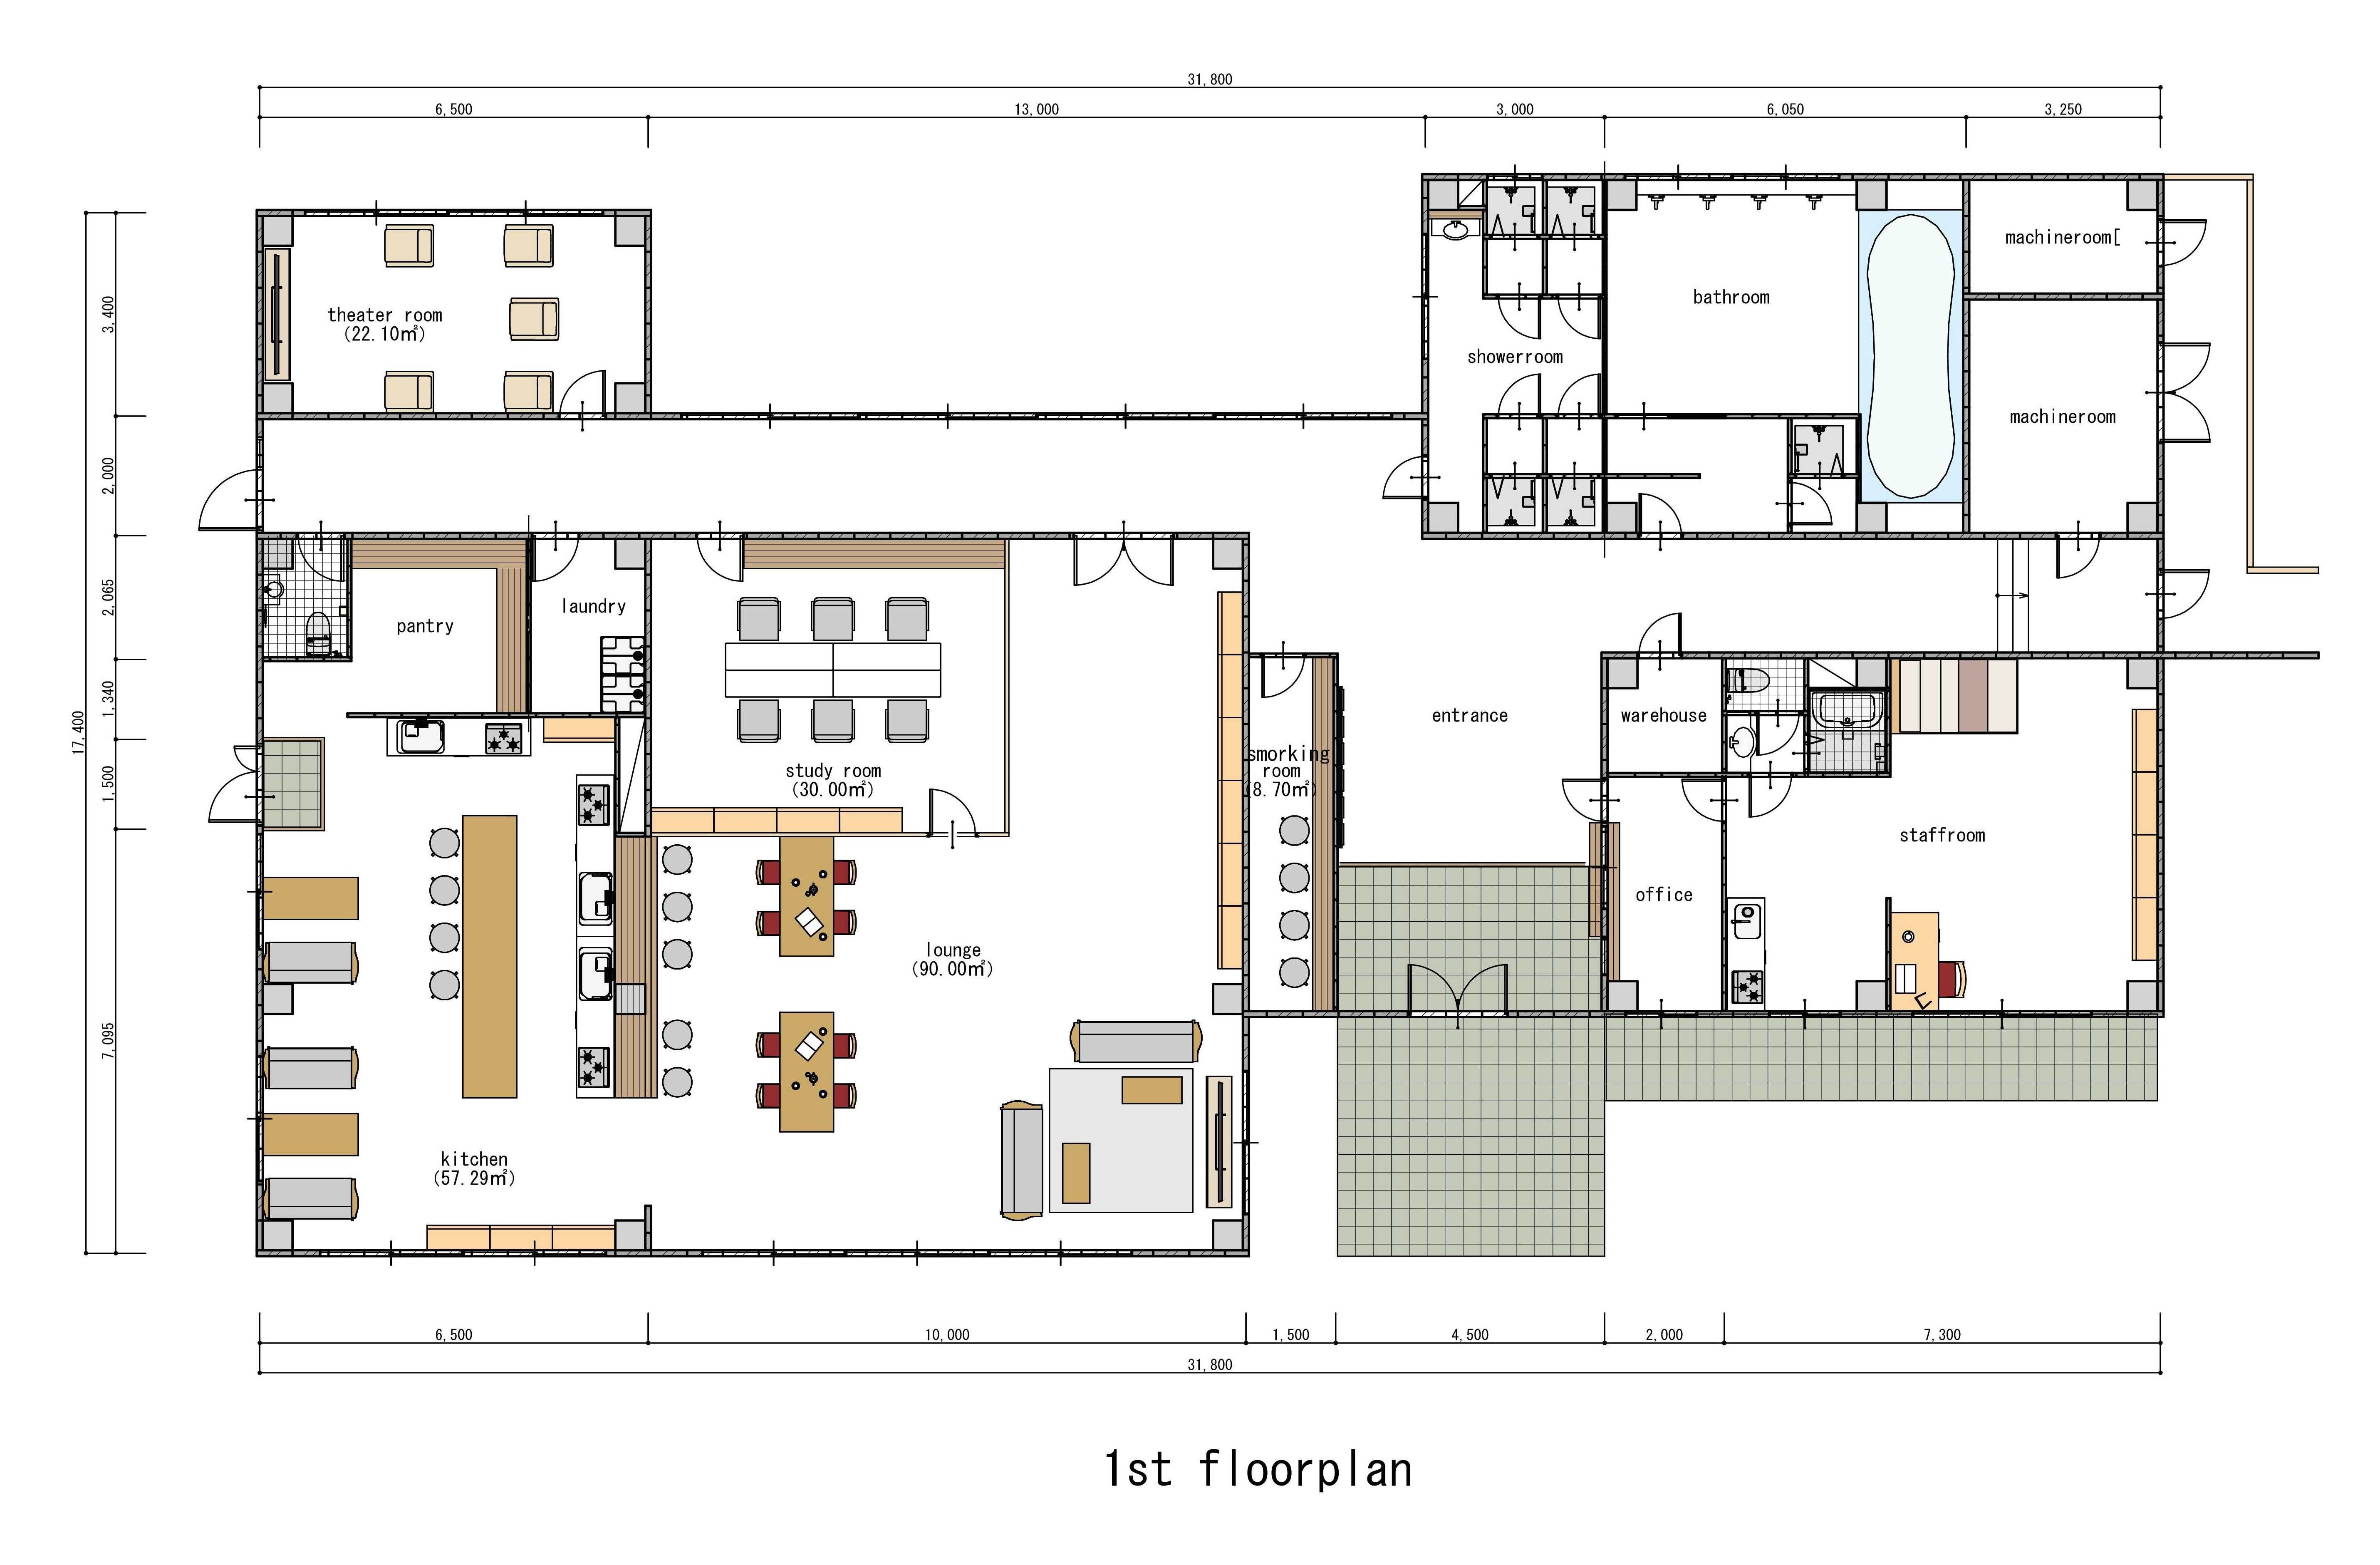 guesthouse sharehouse Social美宅 東戶塚 floorplan1